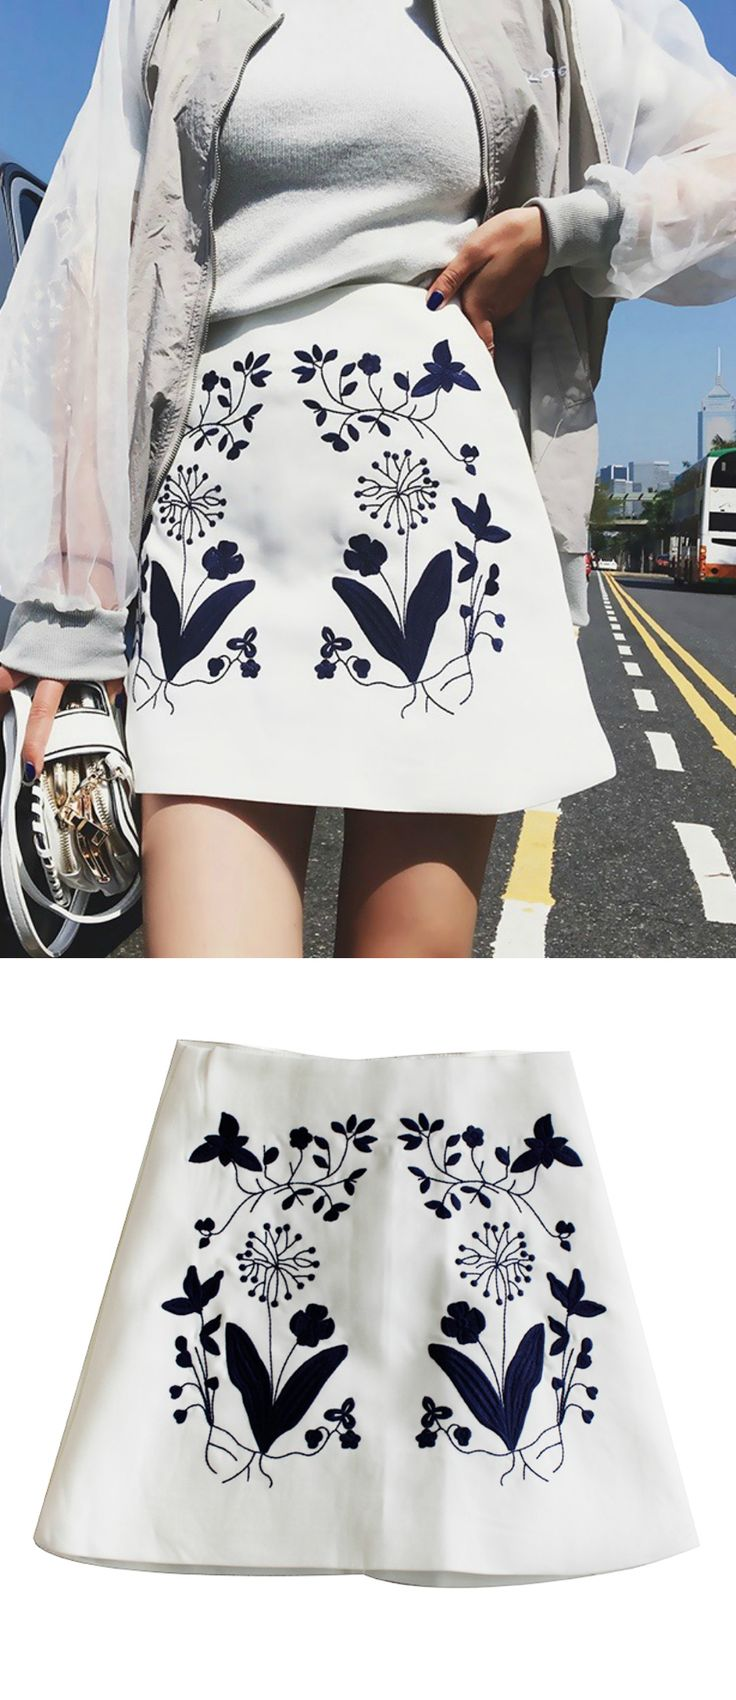 $33.00 - A Boho Chic Skirt as featured on Pasaboho. ❤️ This embroidery skirt exhibit unique design with beautiful embroidered floral patterns. :: boho fashion :: gypsy style :: hippie chic :: boho chic :: outfit ideas :: boho kimono :: free spirit :: fashion trend :: embroidered :: flowers :: floral :: lace :: summer :: fabulous :: love :: street style :: fashion style :: boho style :: bohemian :: modern vintage :: ethnic tribal :: rompers :: skirts